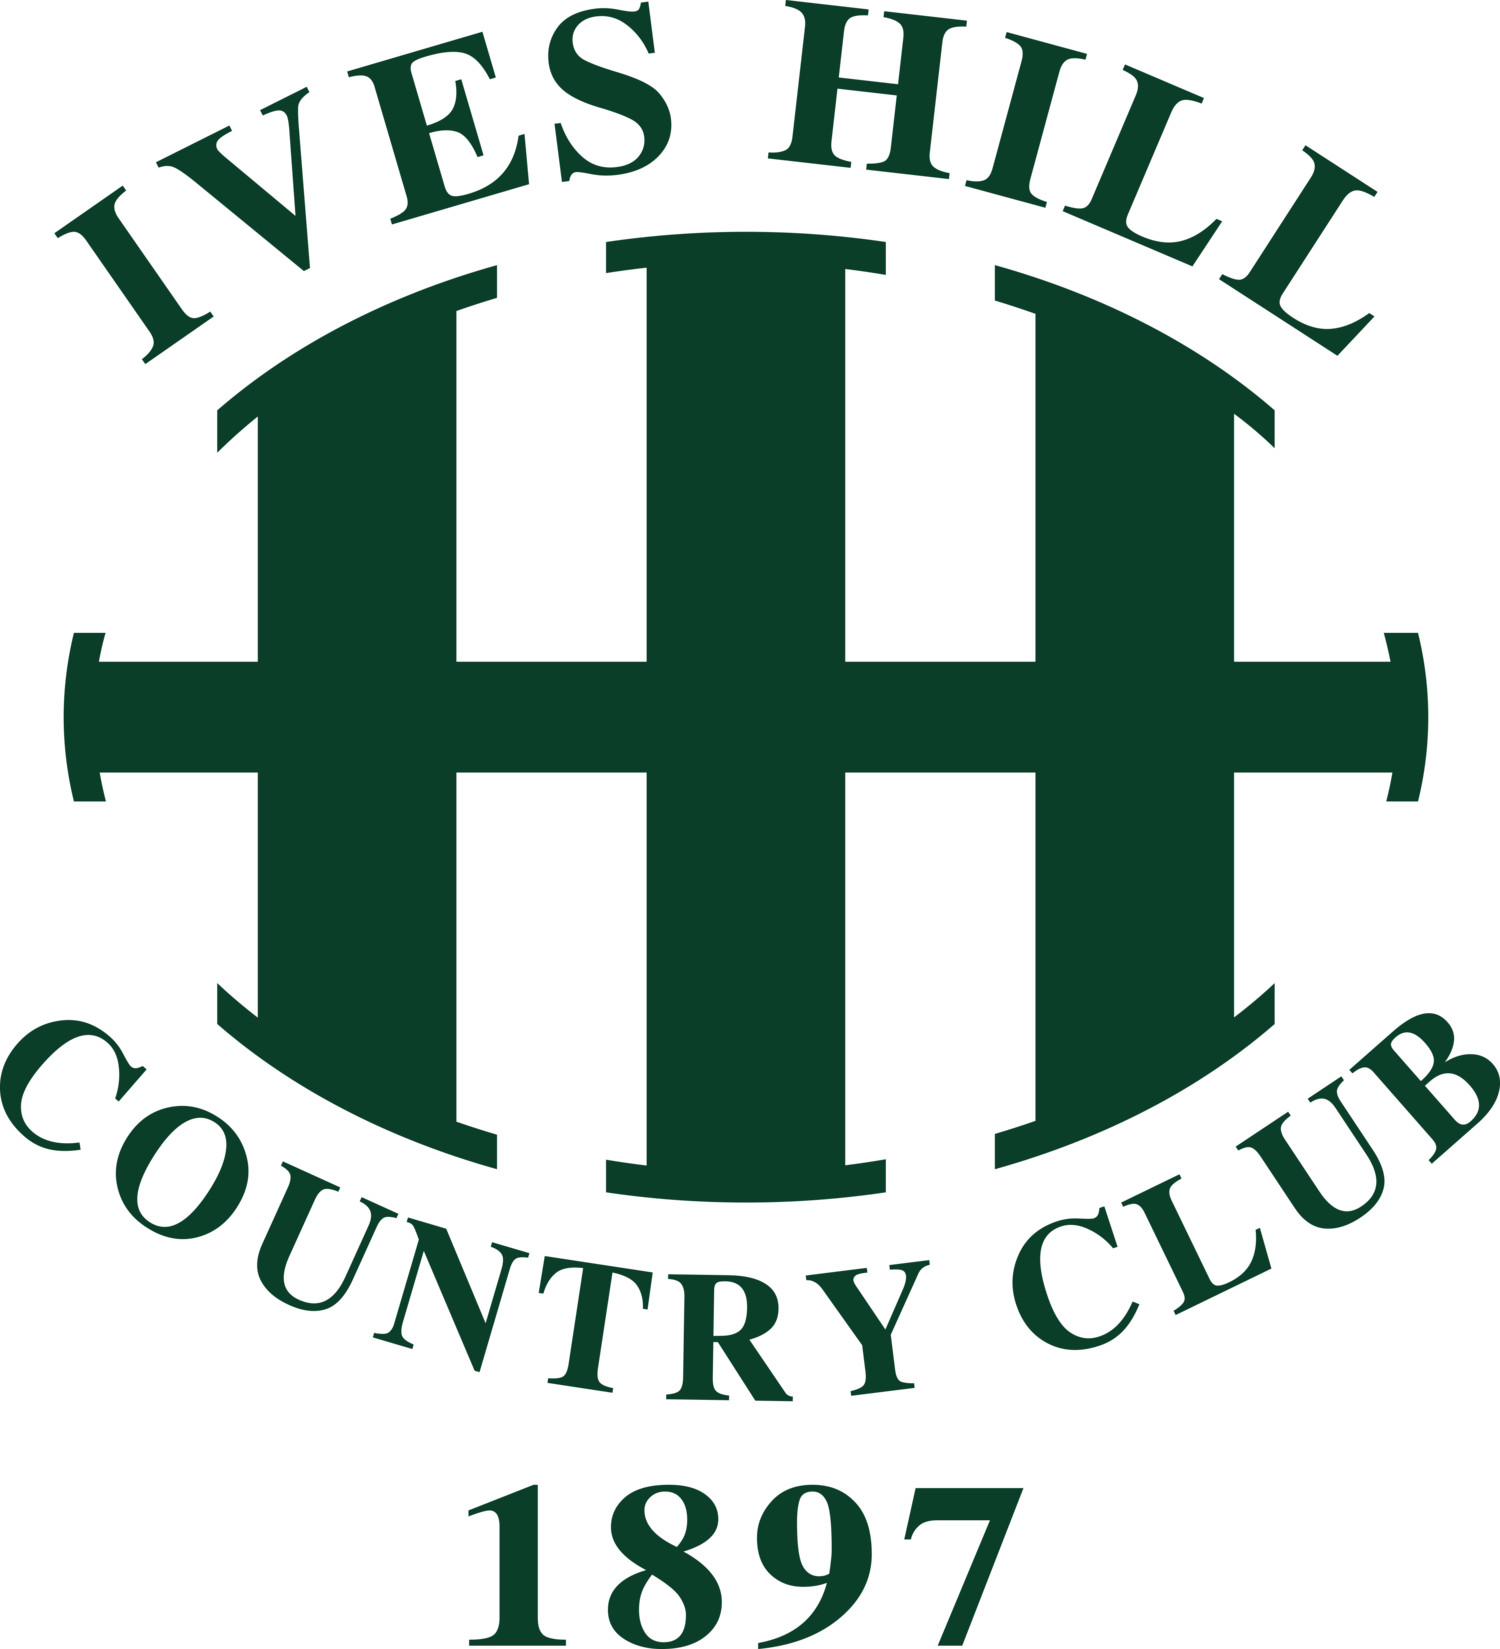 Ives Hill Country Club